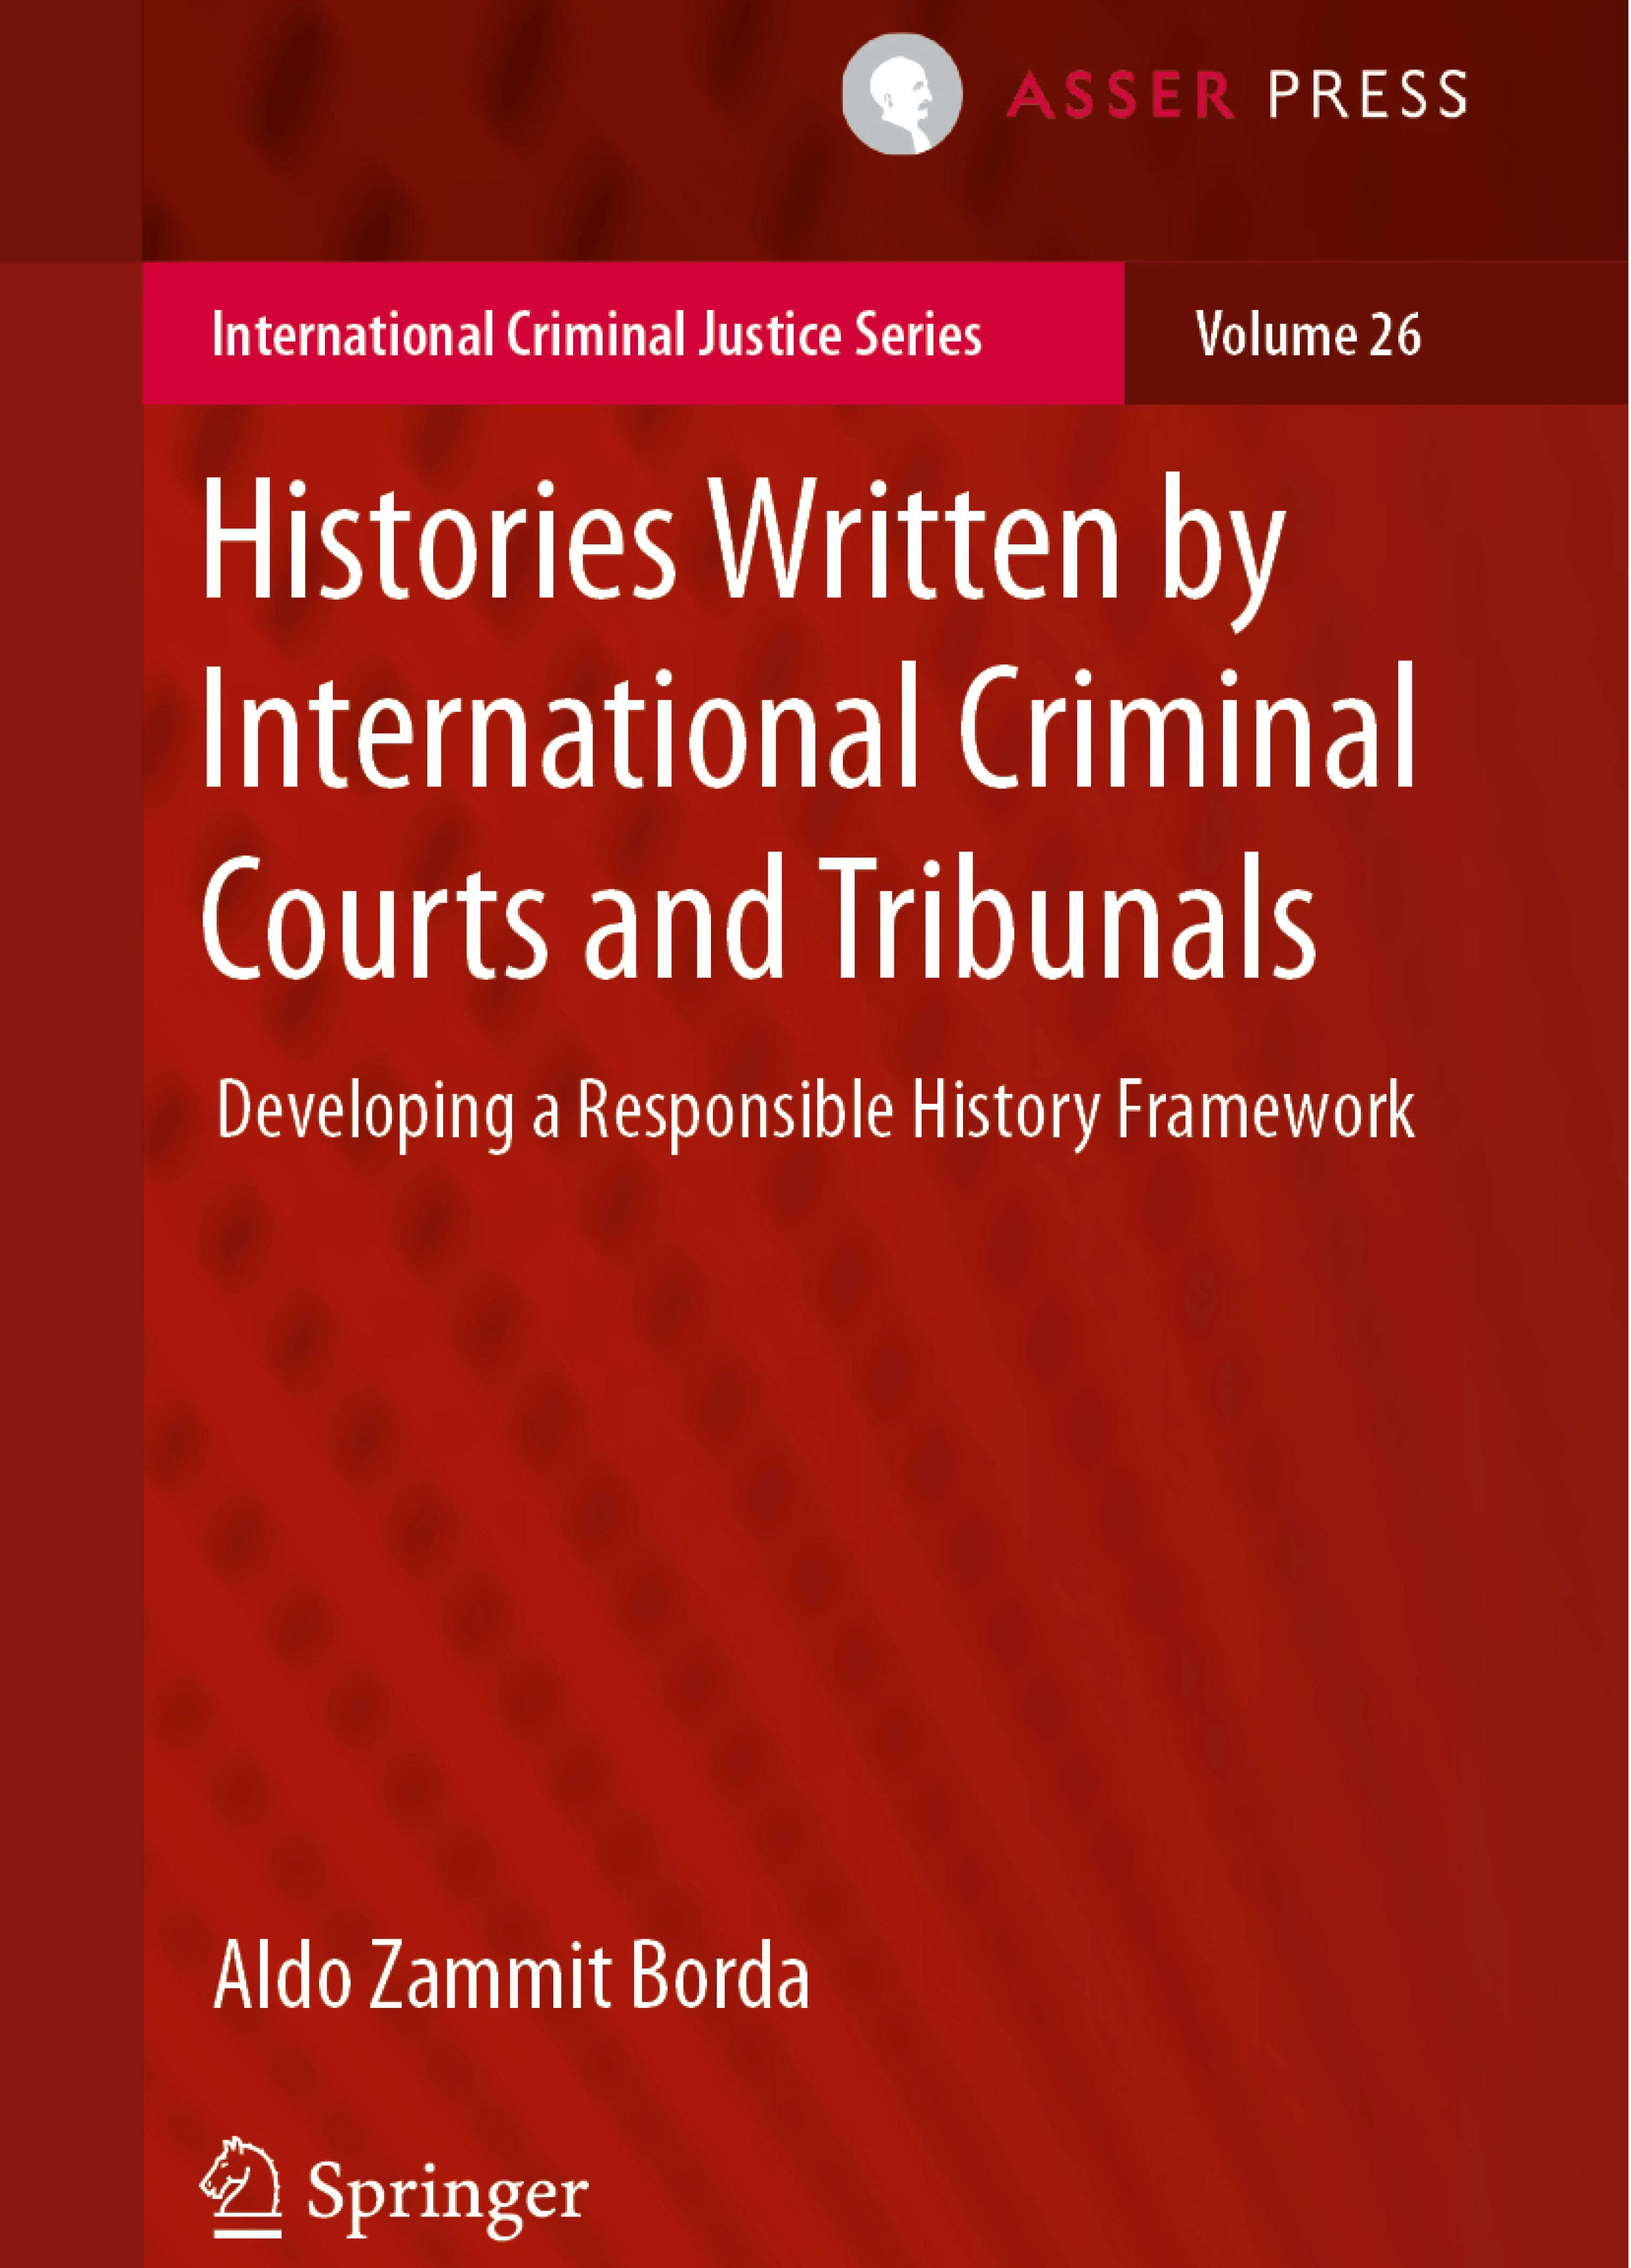 Histories Written by International Criminal Courts and Tribunals - Developing a Responsible History Framework